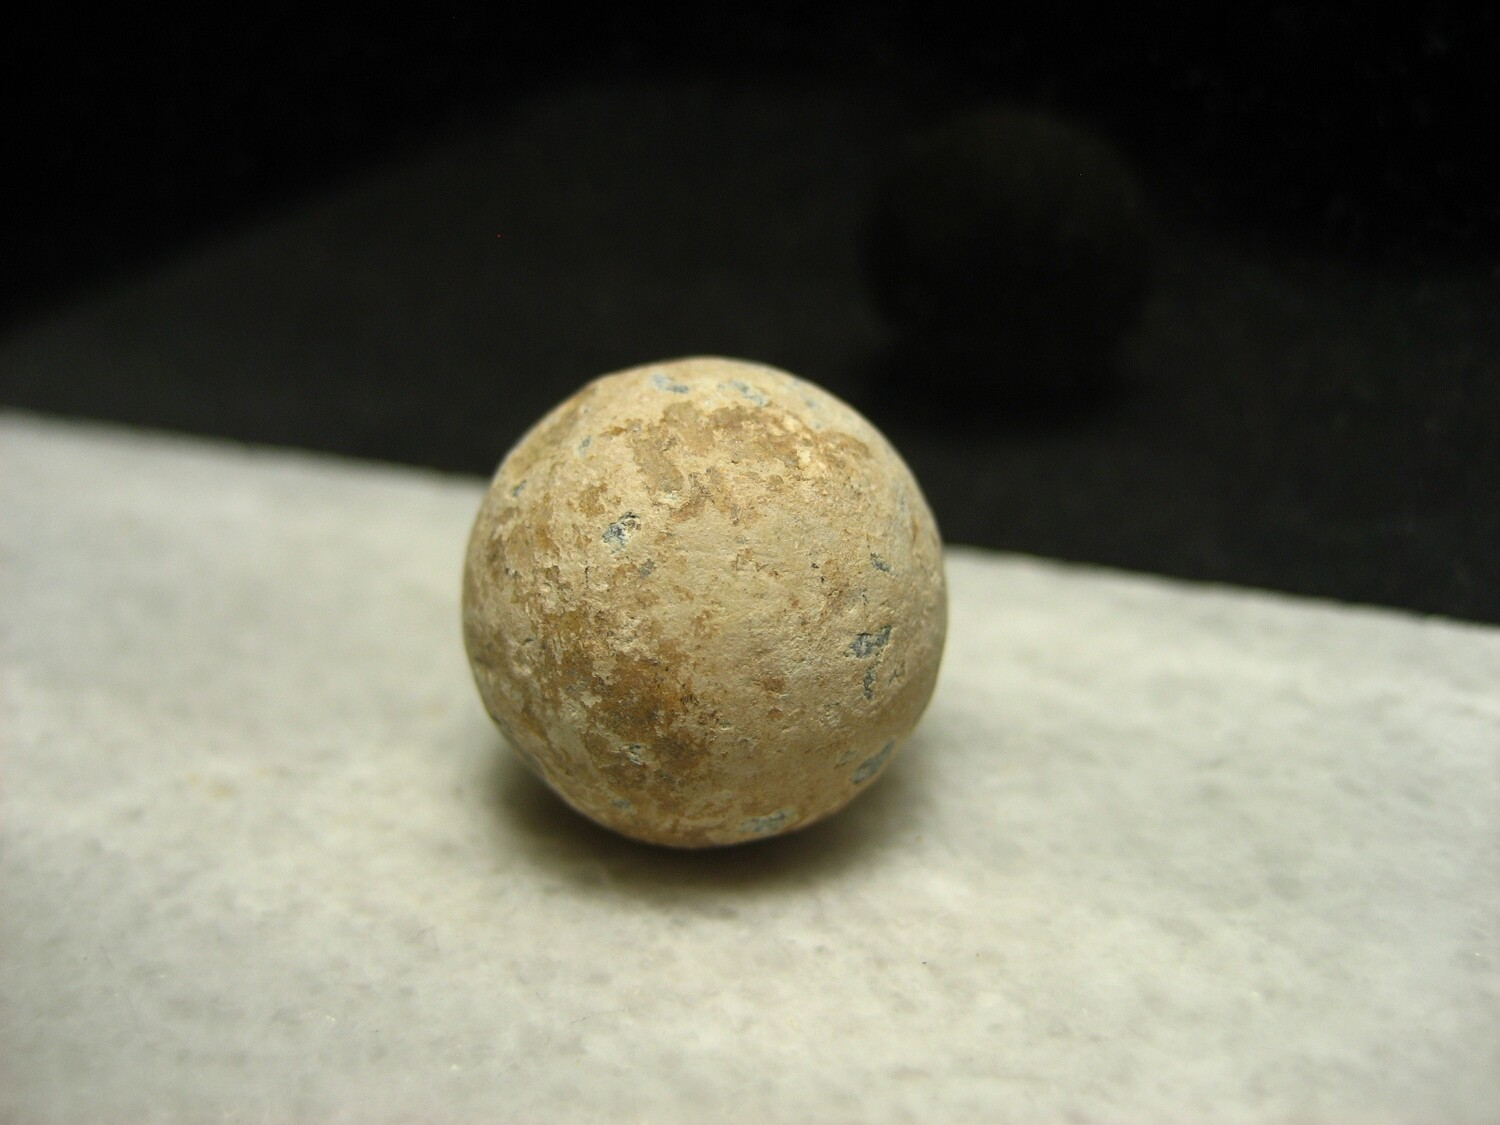 JUST ADDED ON 11/6 - THE SECOND BATTLE OF MANASSAS / FAIRFAX STATION - .69 Caliber Musket Ball